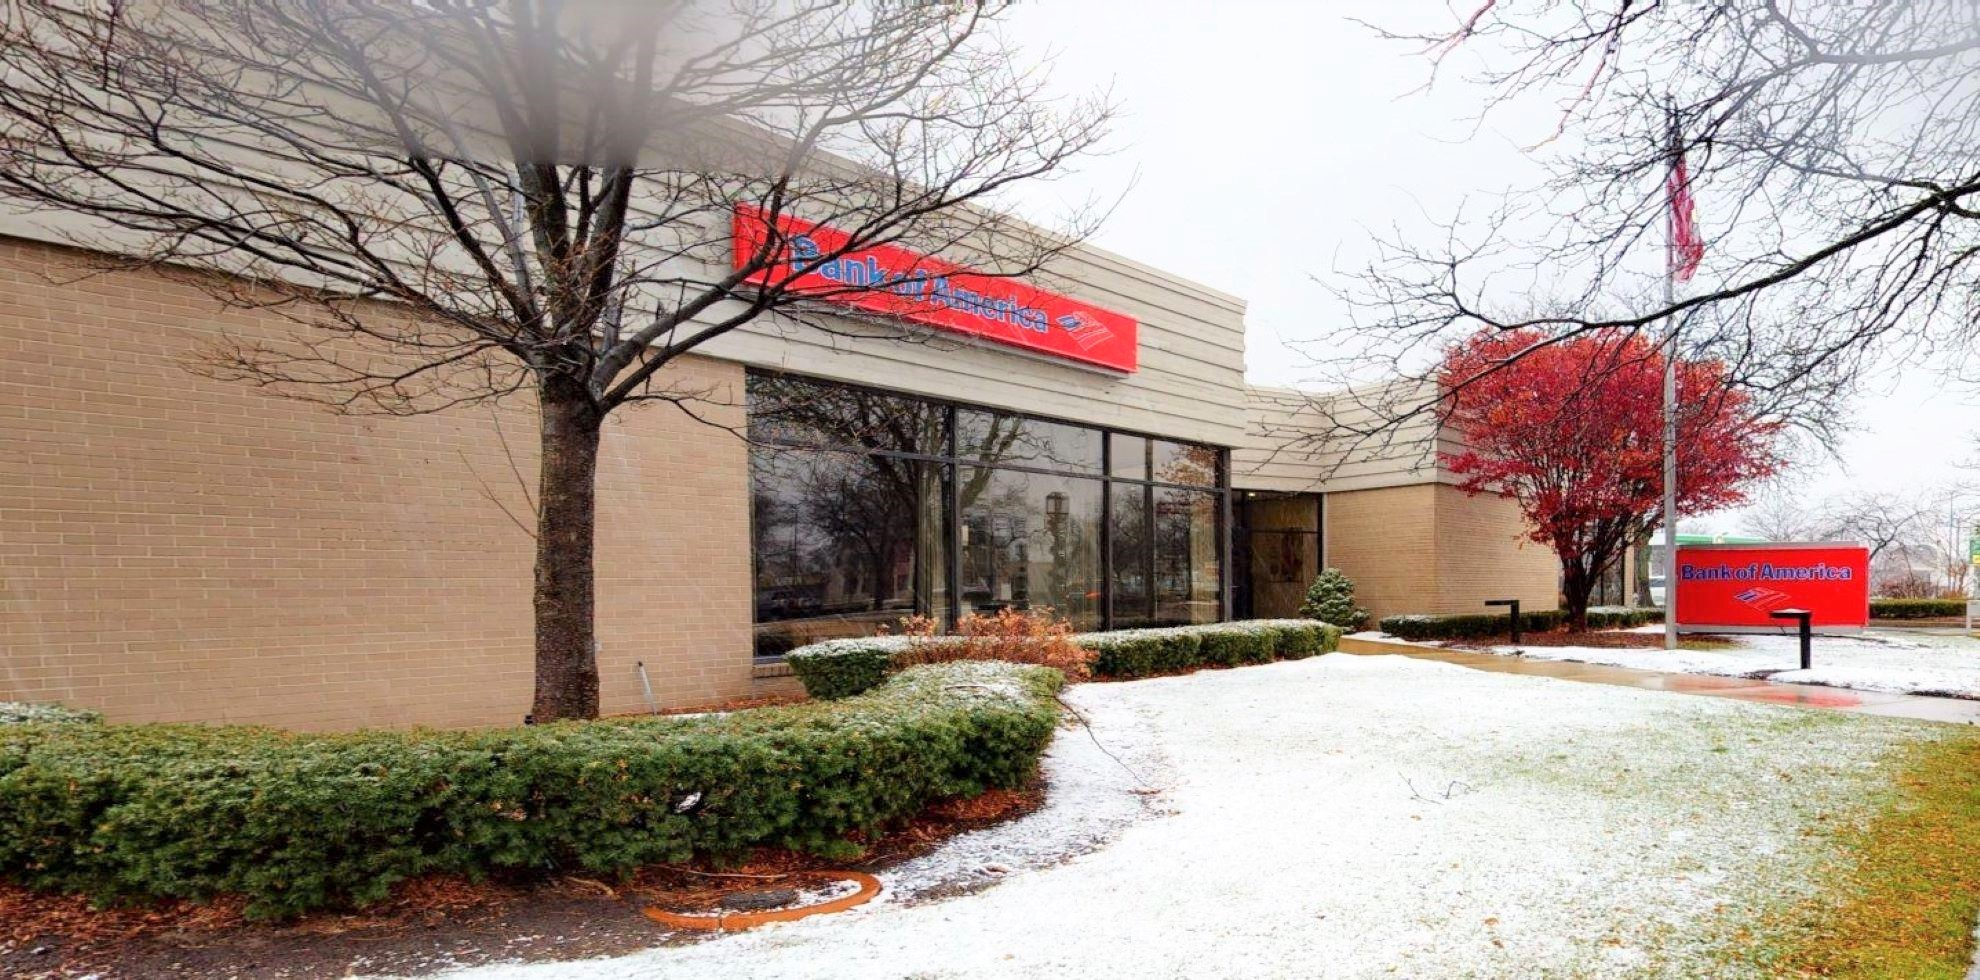 Bank of America financial center with drive-thru ATM | 15751 E 9 Mile Rd, Eastpointe, MI 48021